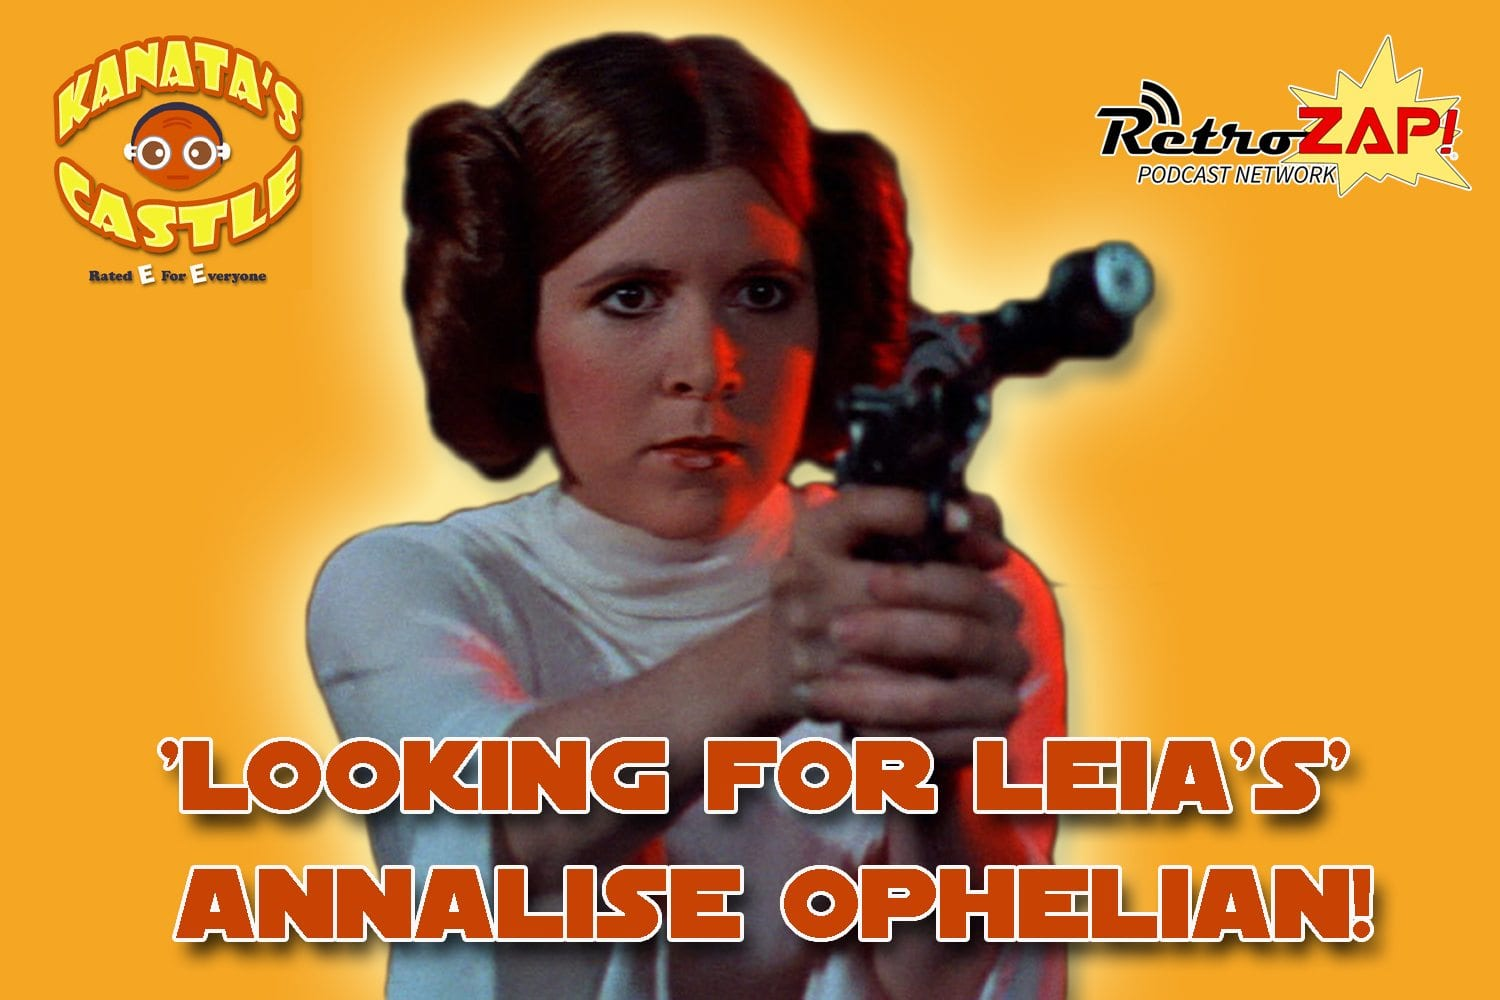 Kanata's Castle Special Interview Looking For Leia